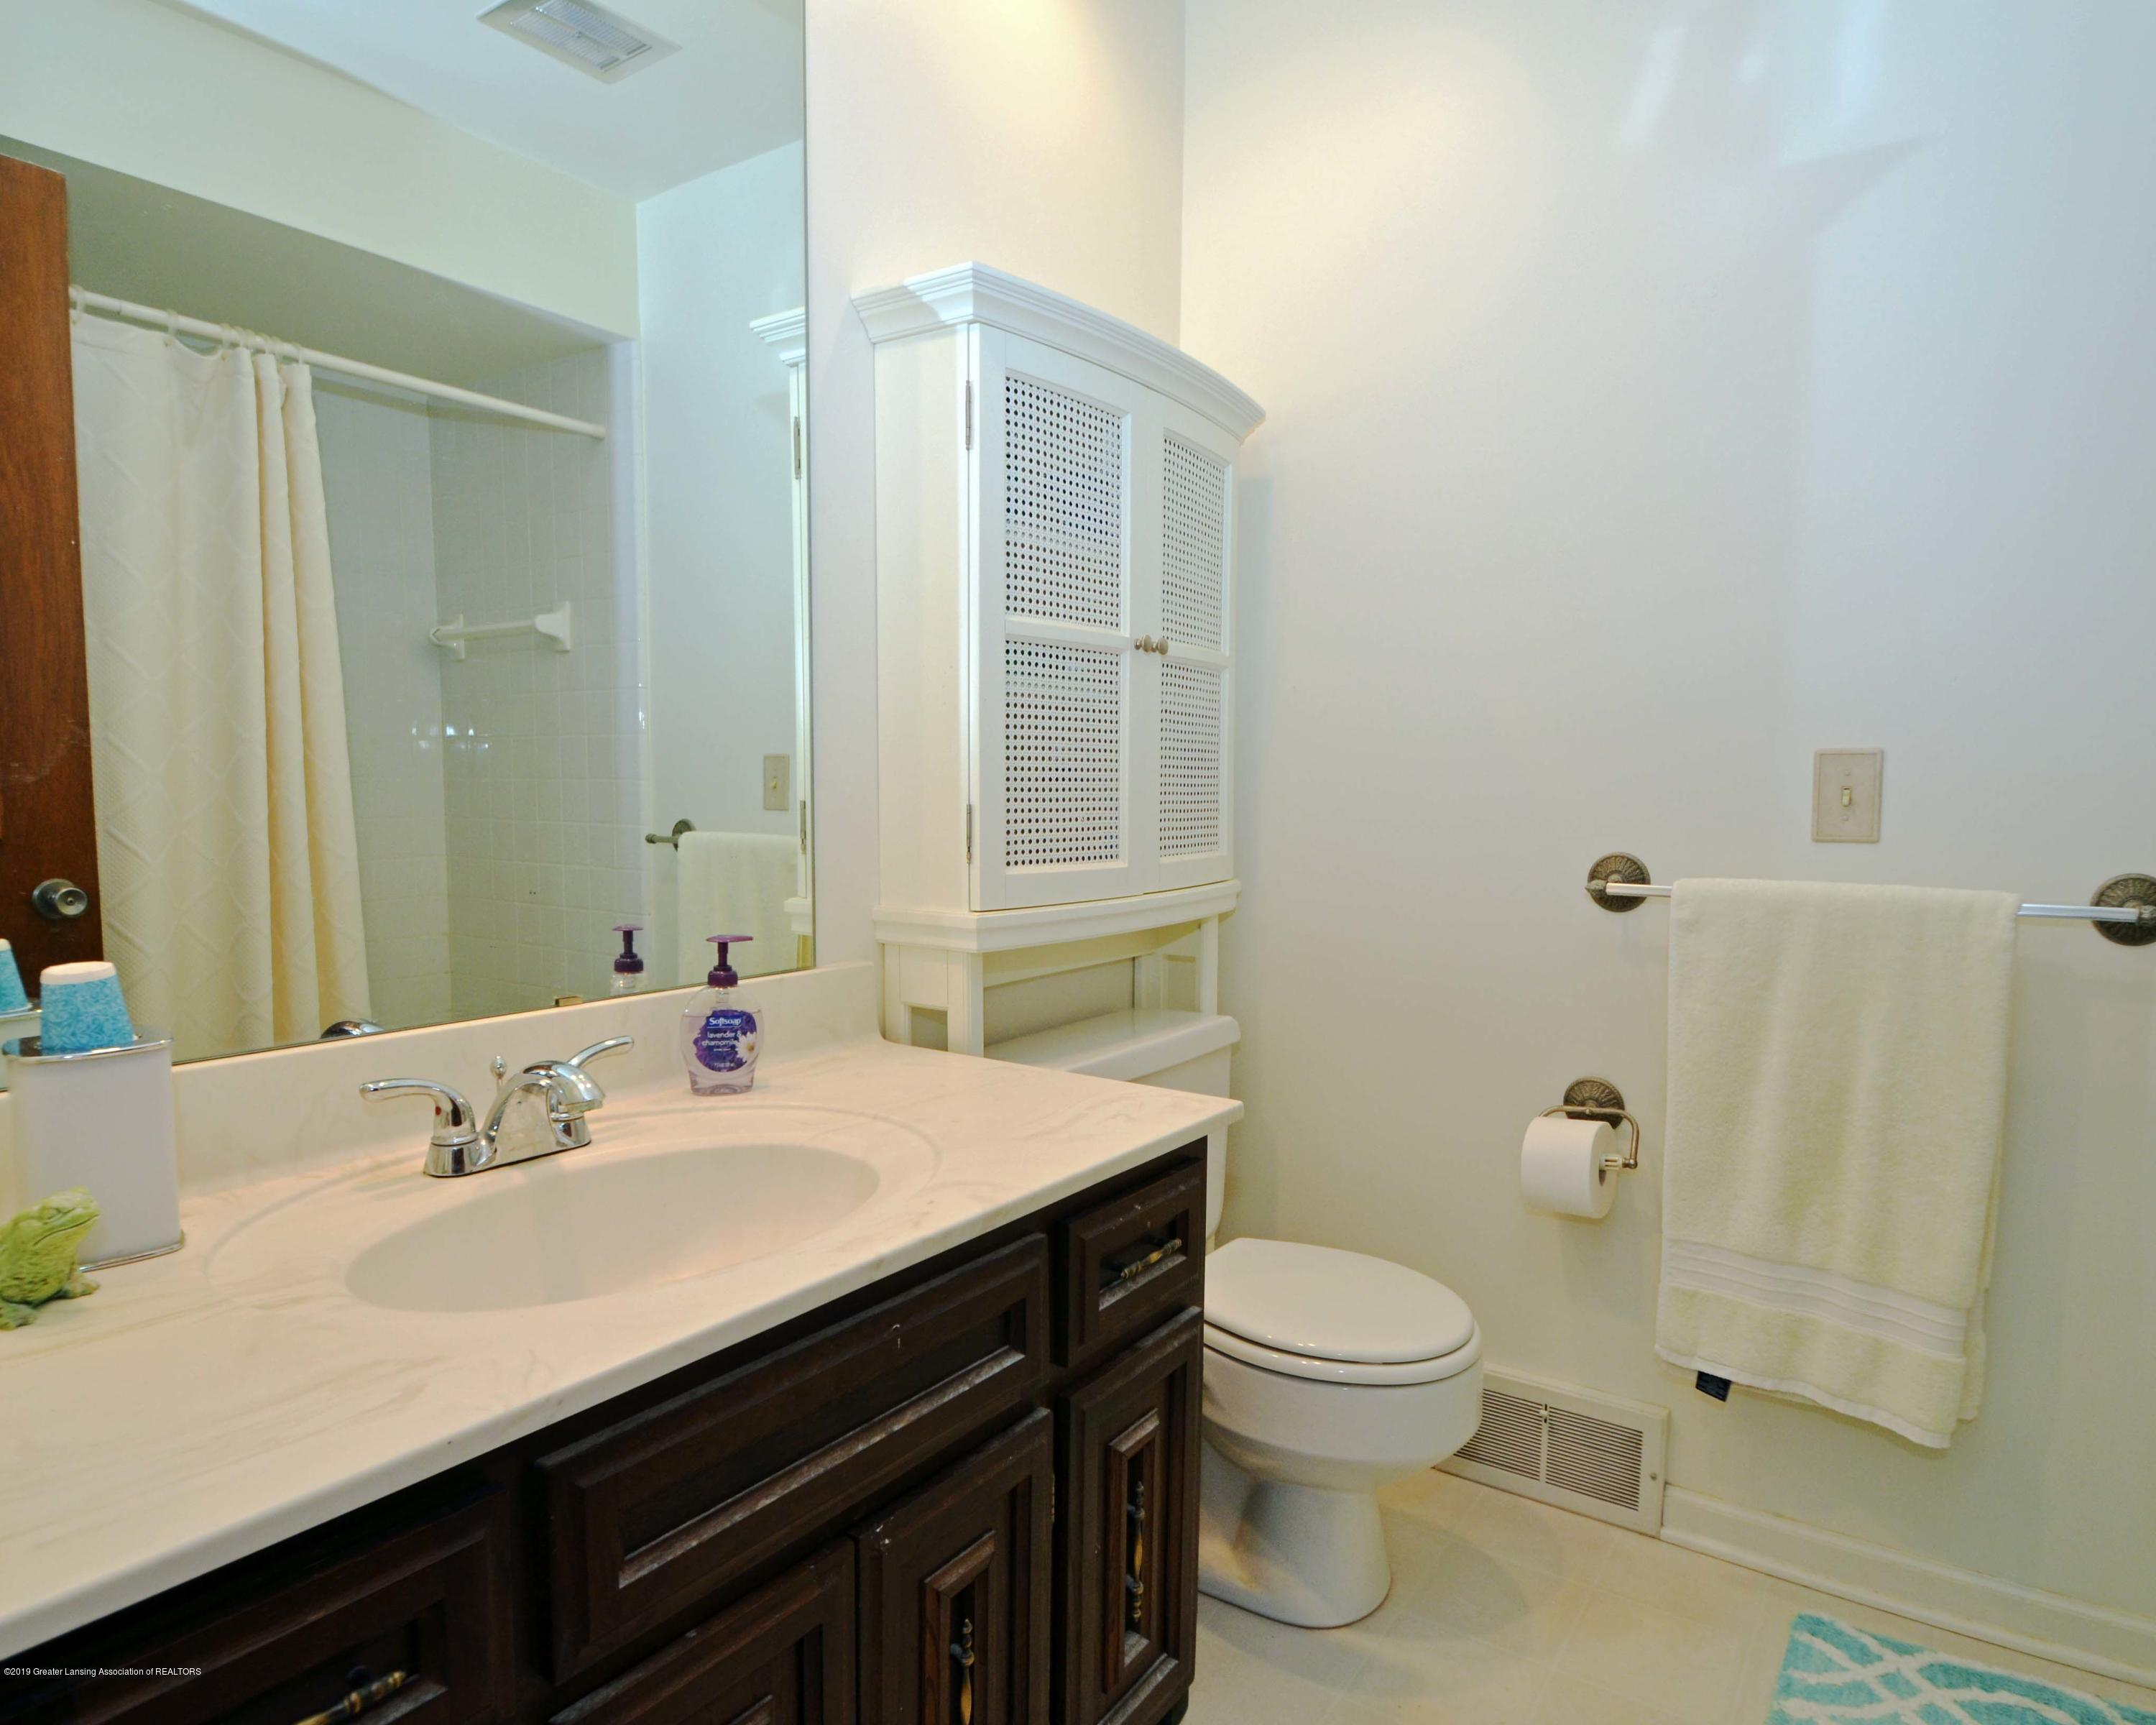 4711 Arapaho Trail - 32Hall Full Bath - 24